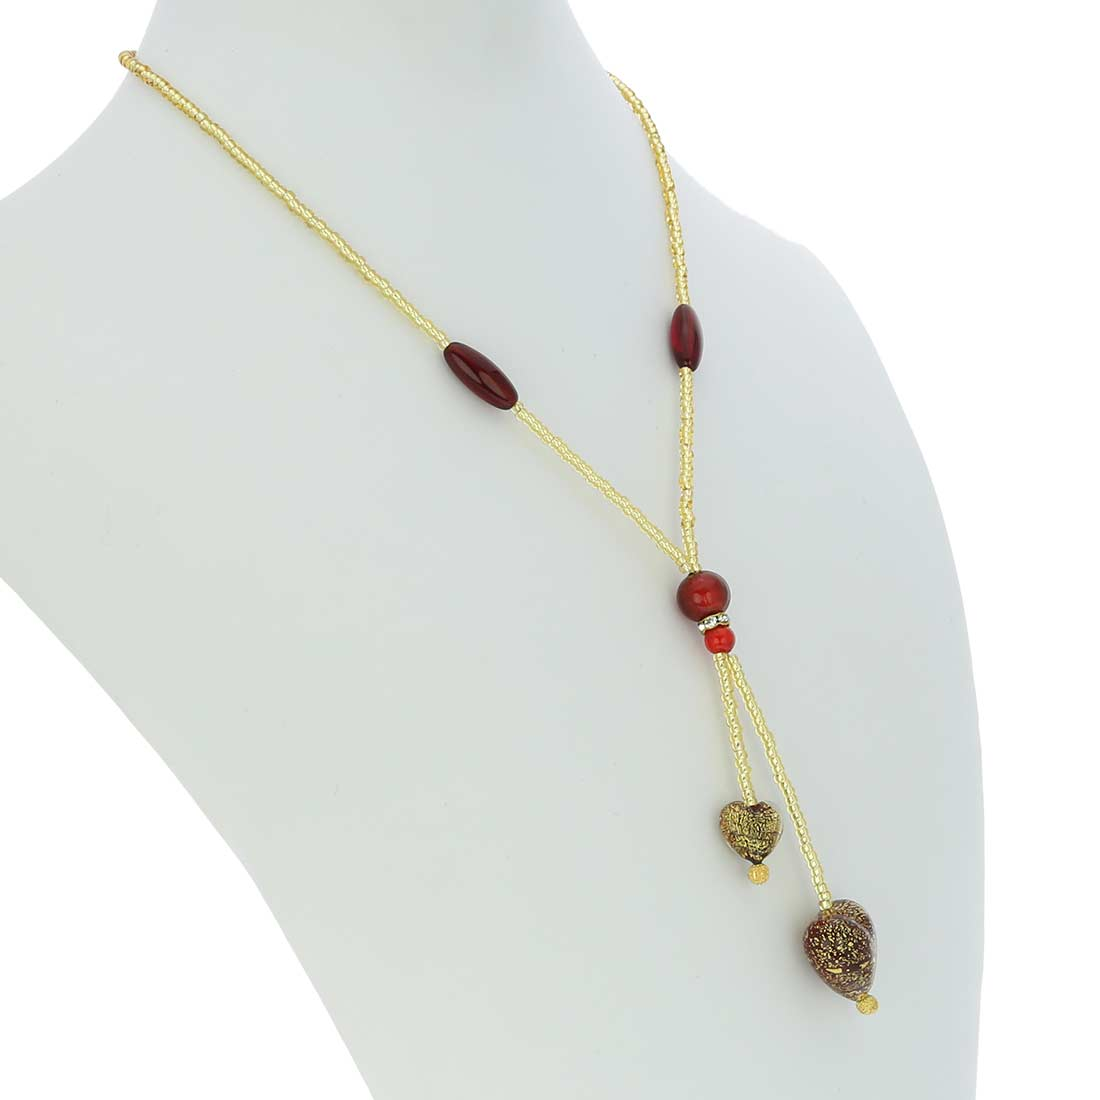 Murano Heart Tie Necklace - Ruby Red and Gold